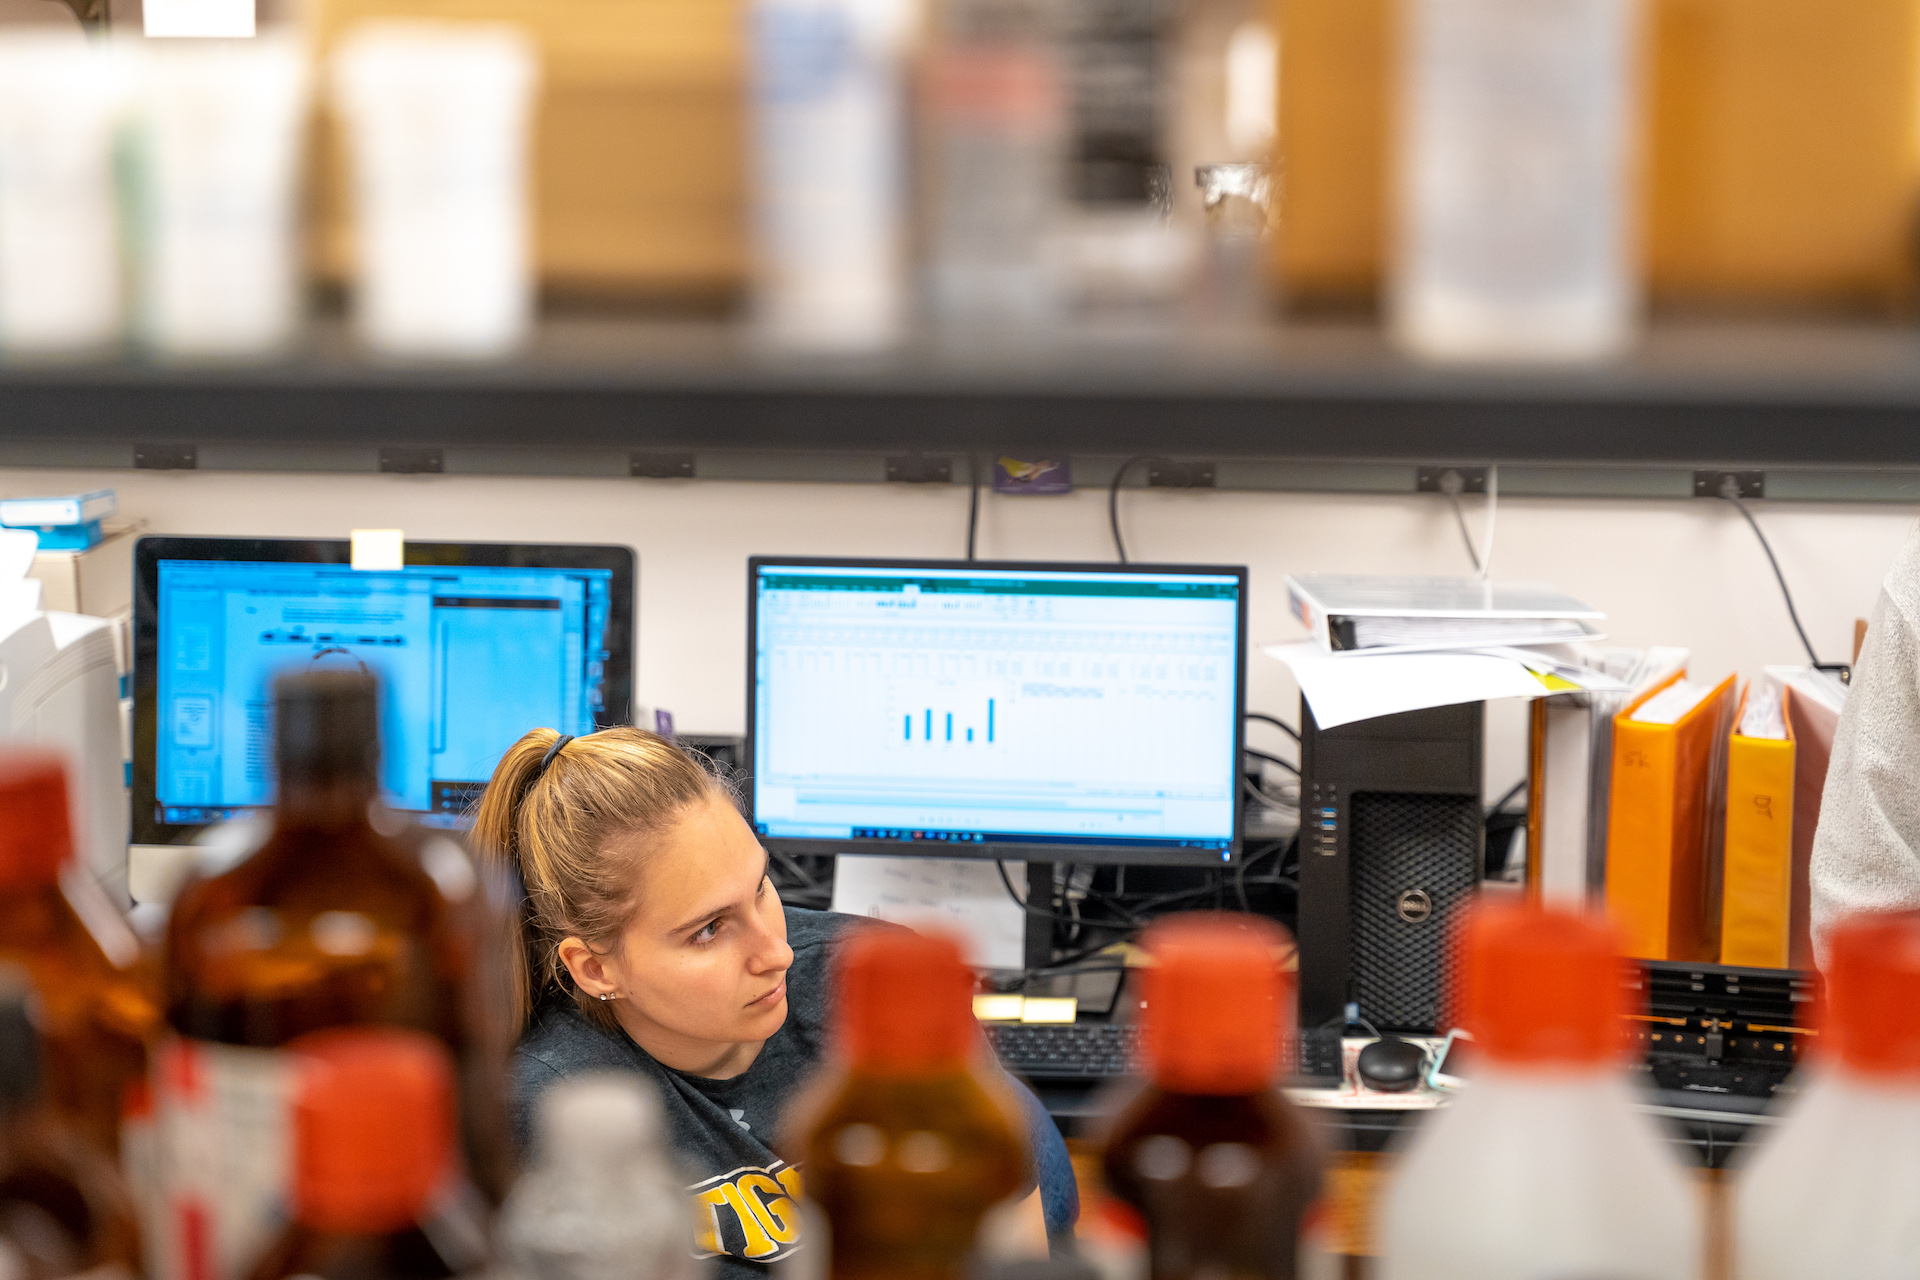 Student sitting behind some bottles during summer research